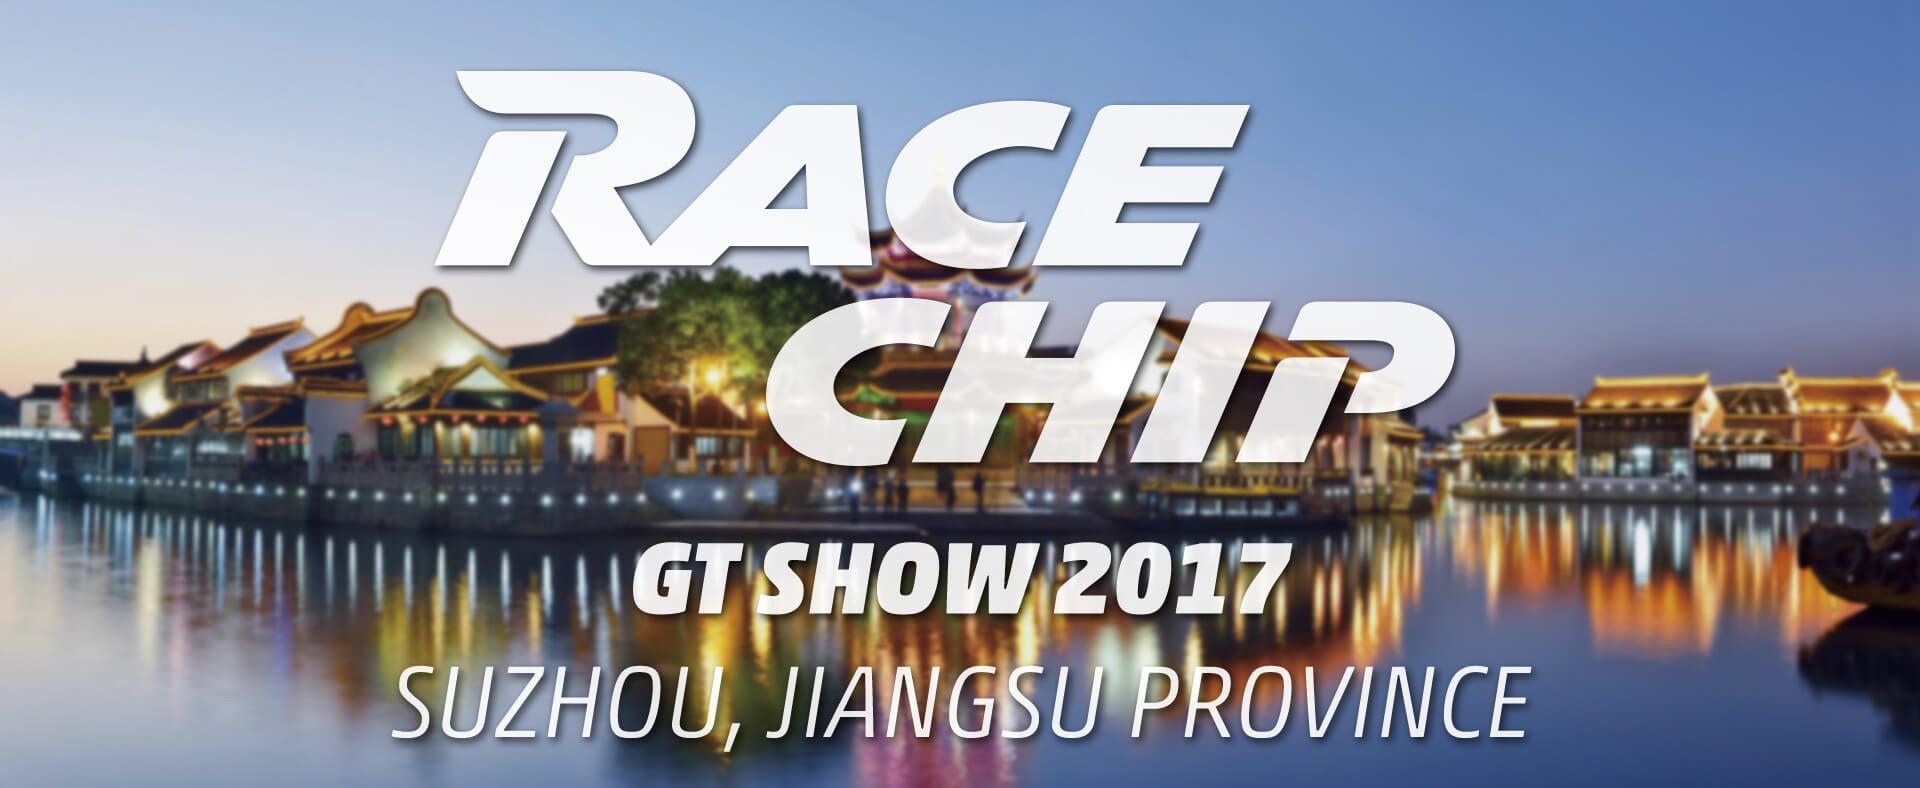 RaceChip at the GT Show in China